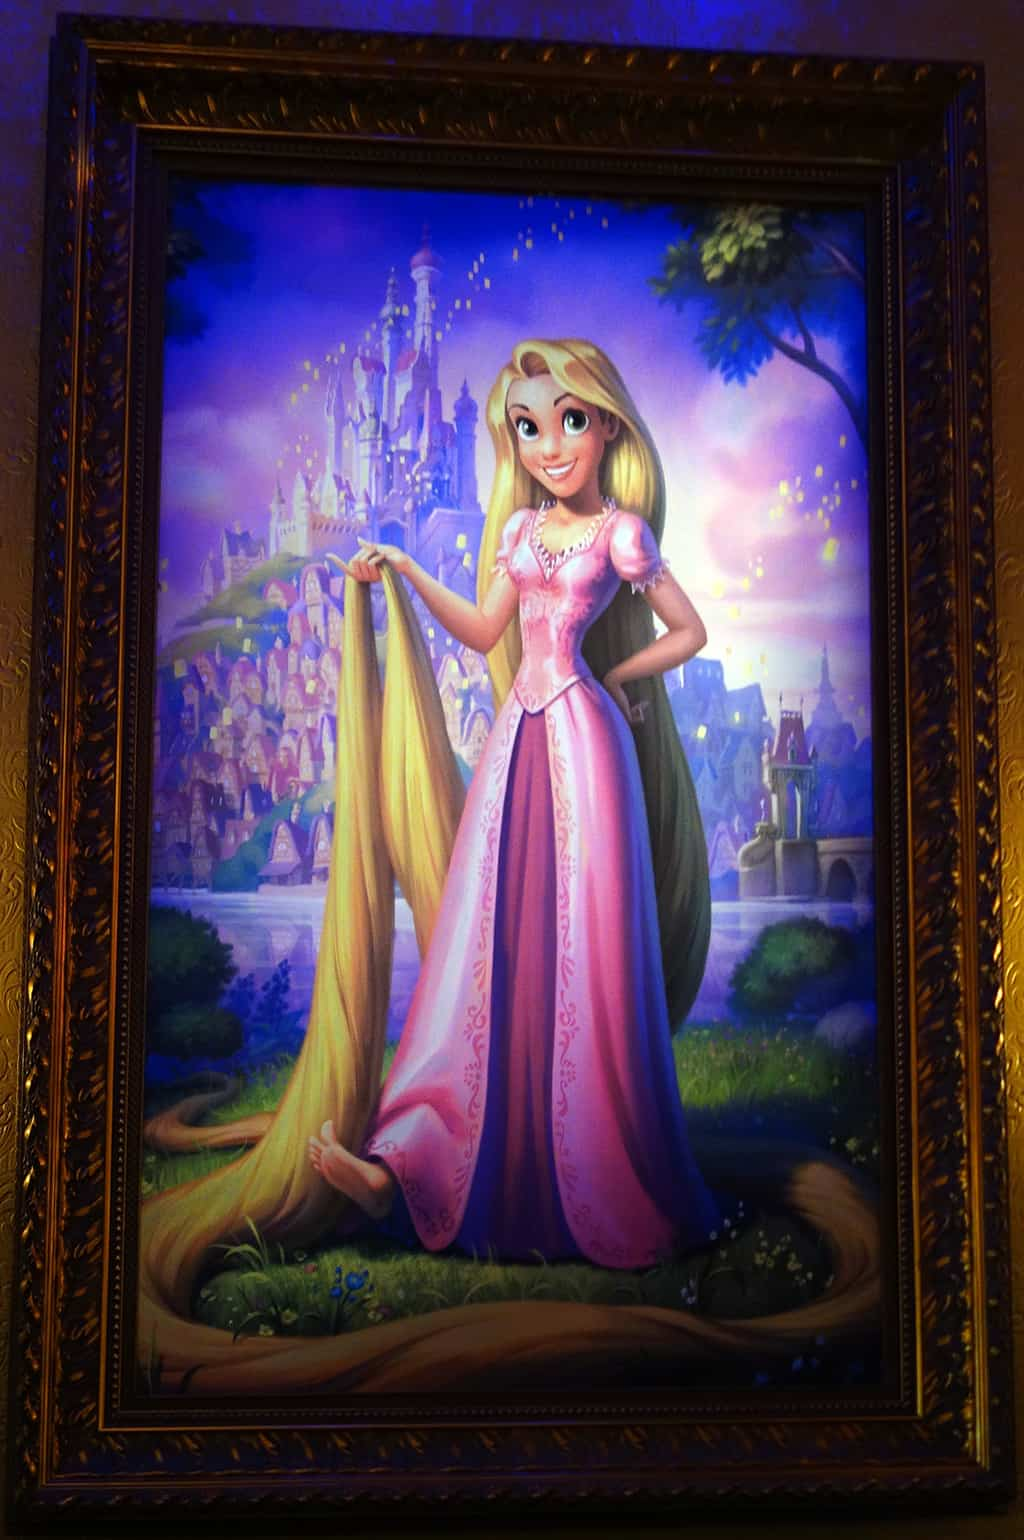 You can find Rapunzel here every day